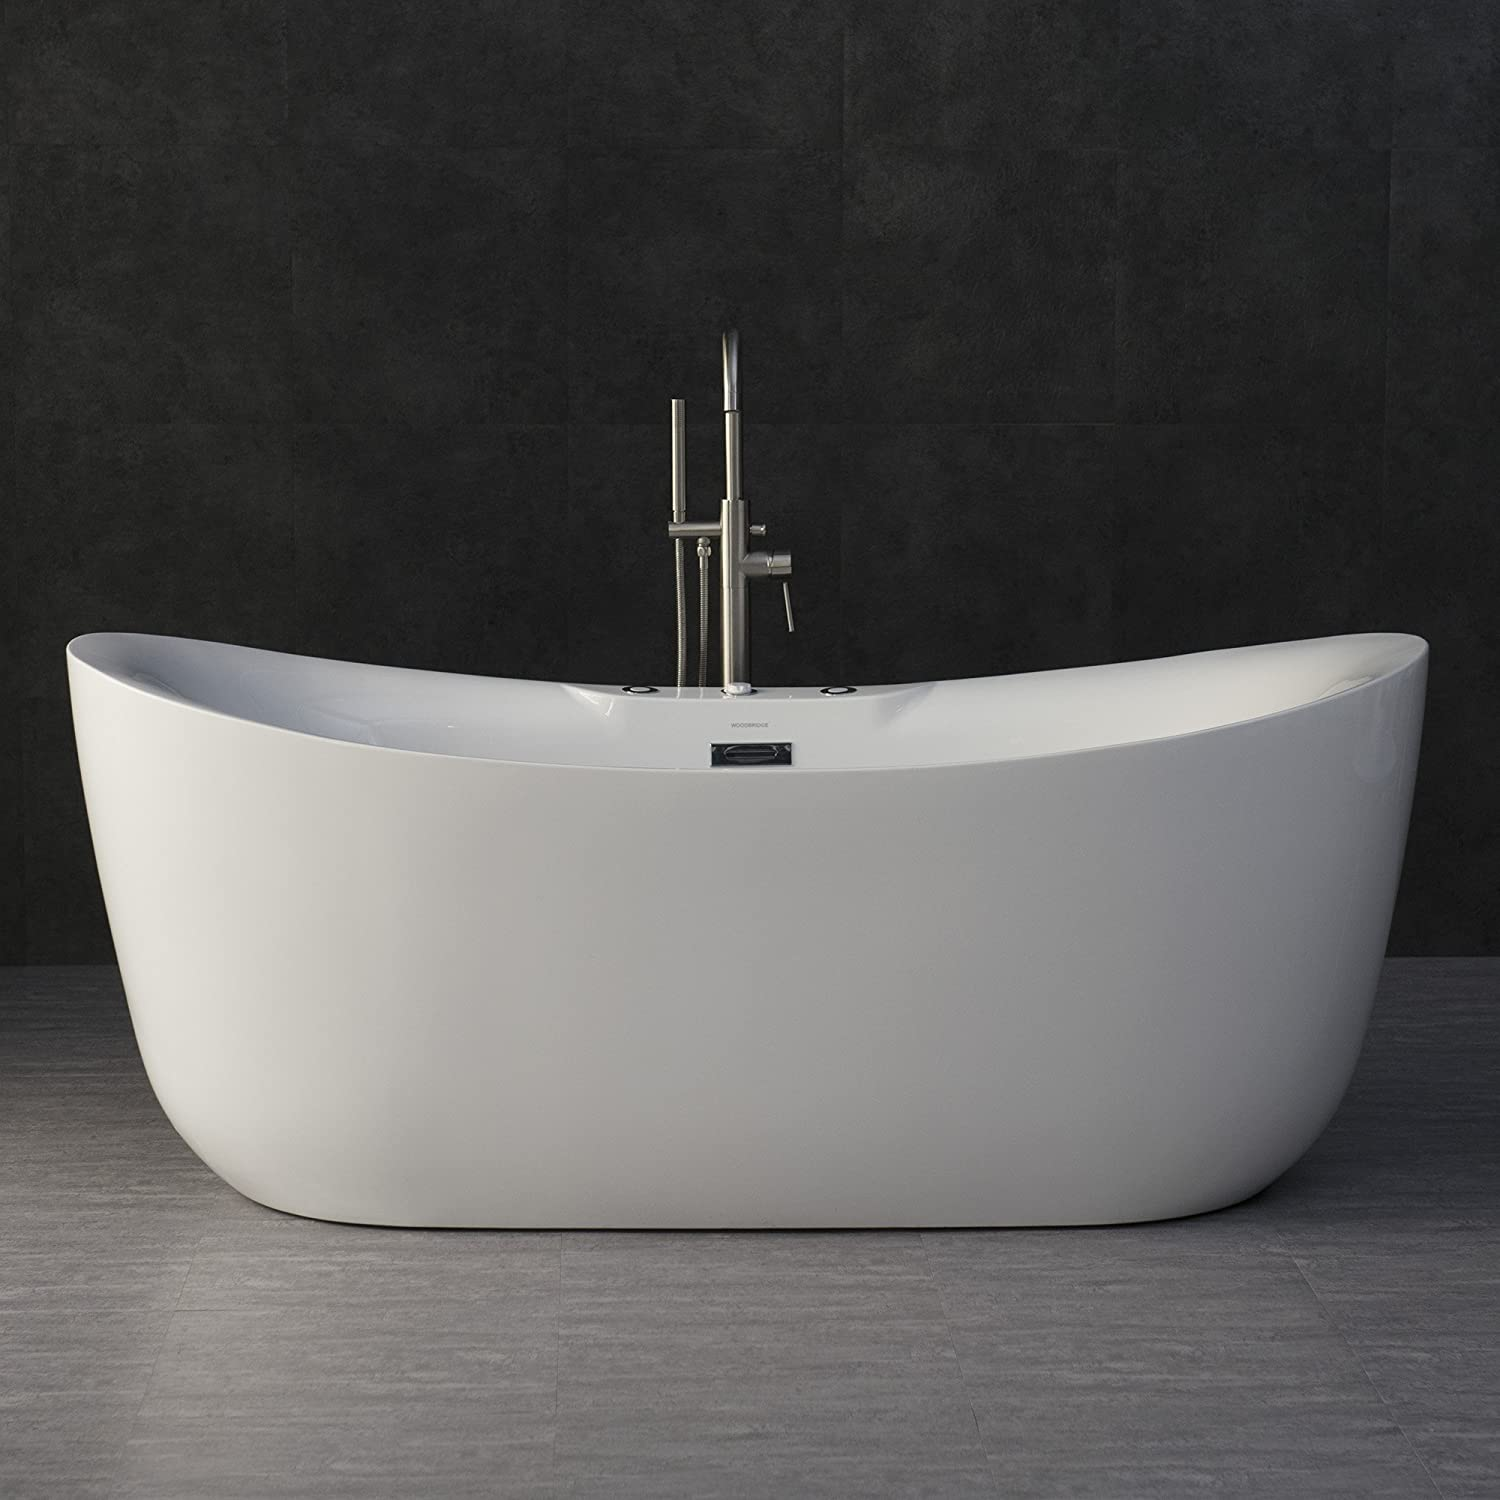 1. Woodbridge 71″ x 31.5″ Freestanding Whirlpool Water Jetted And Air Bubble Bathtub